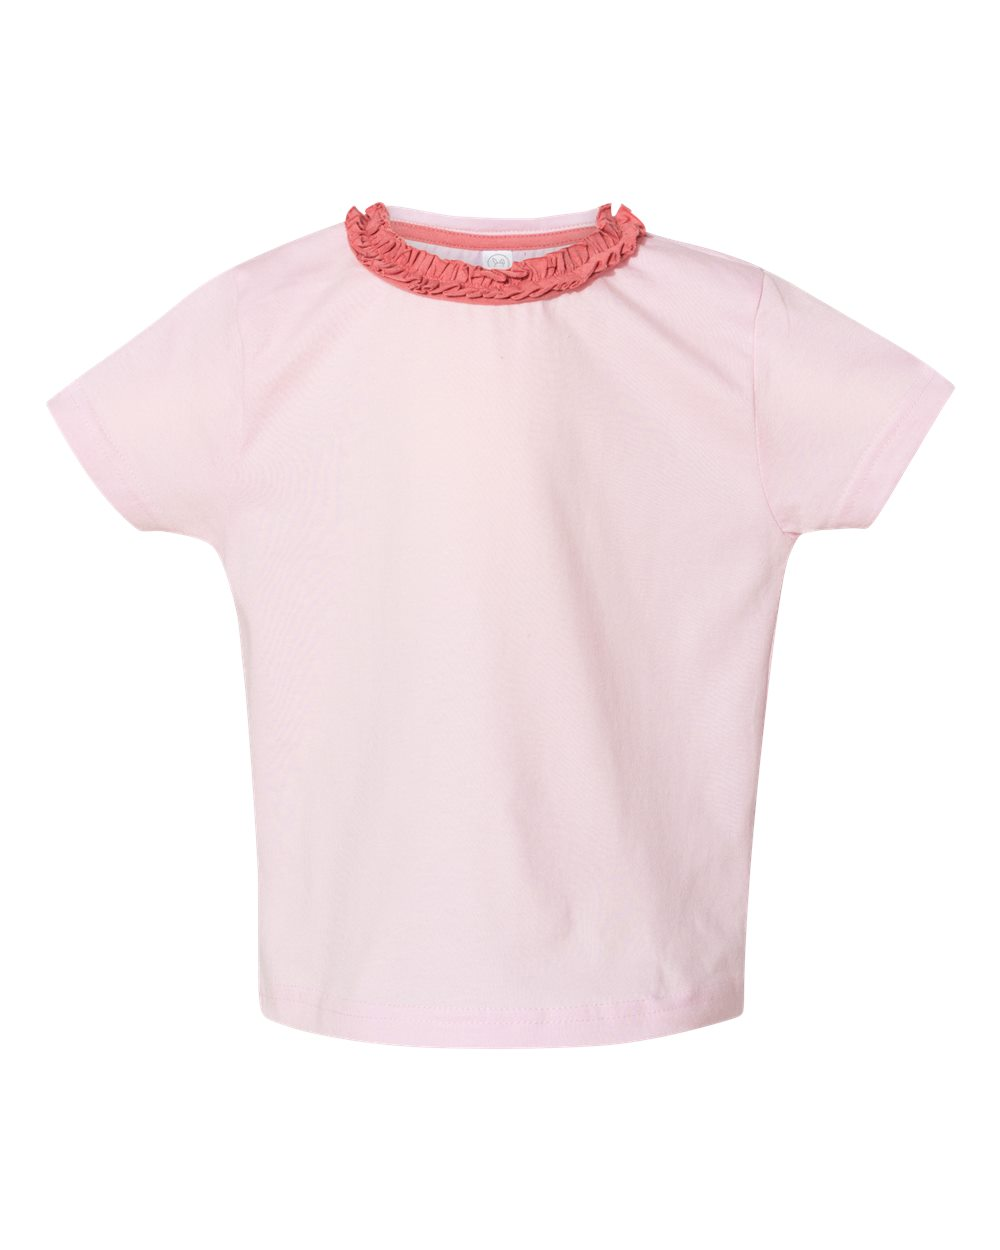 Rabbit Skins 3329 - Toddler Girls' Ruffle Neck Fine Jersey Tee